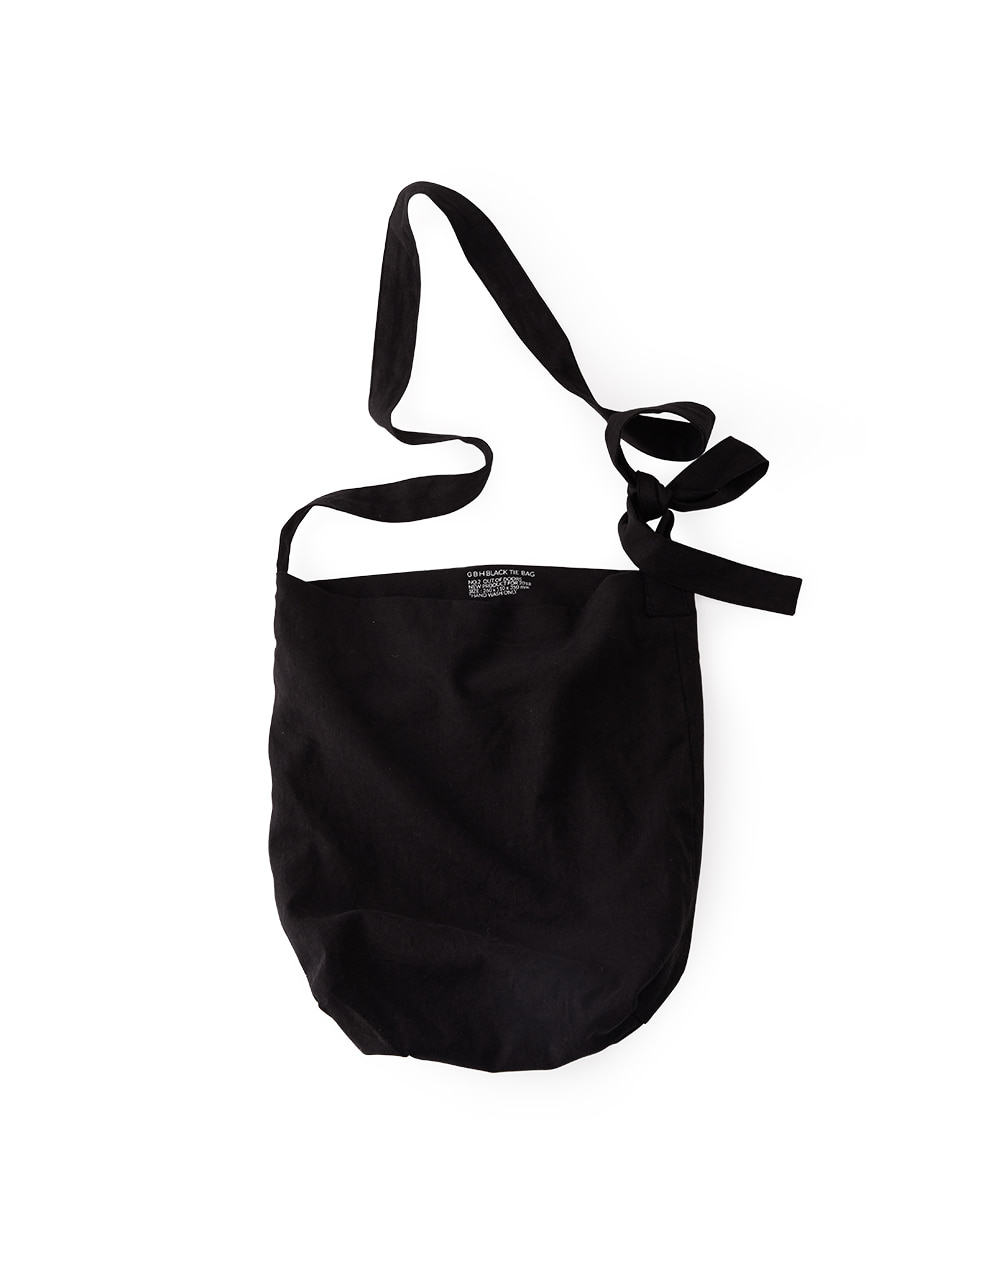 GBH HOME BLACK TIE BAG LARGE